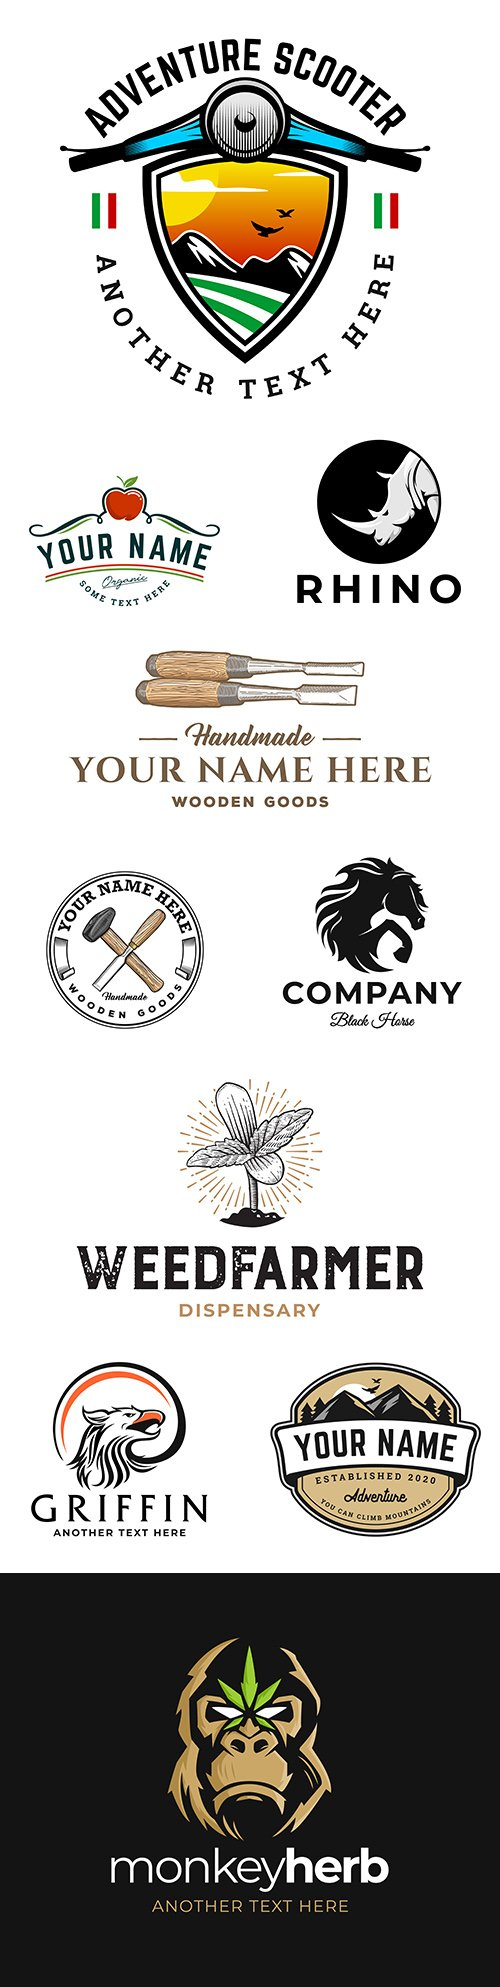 Brand name company logos business corporate design 15